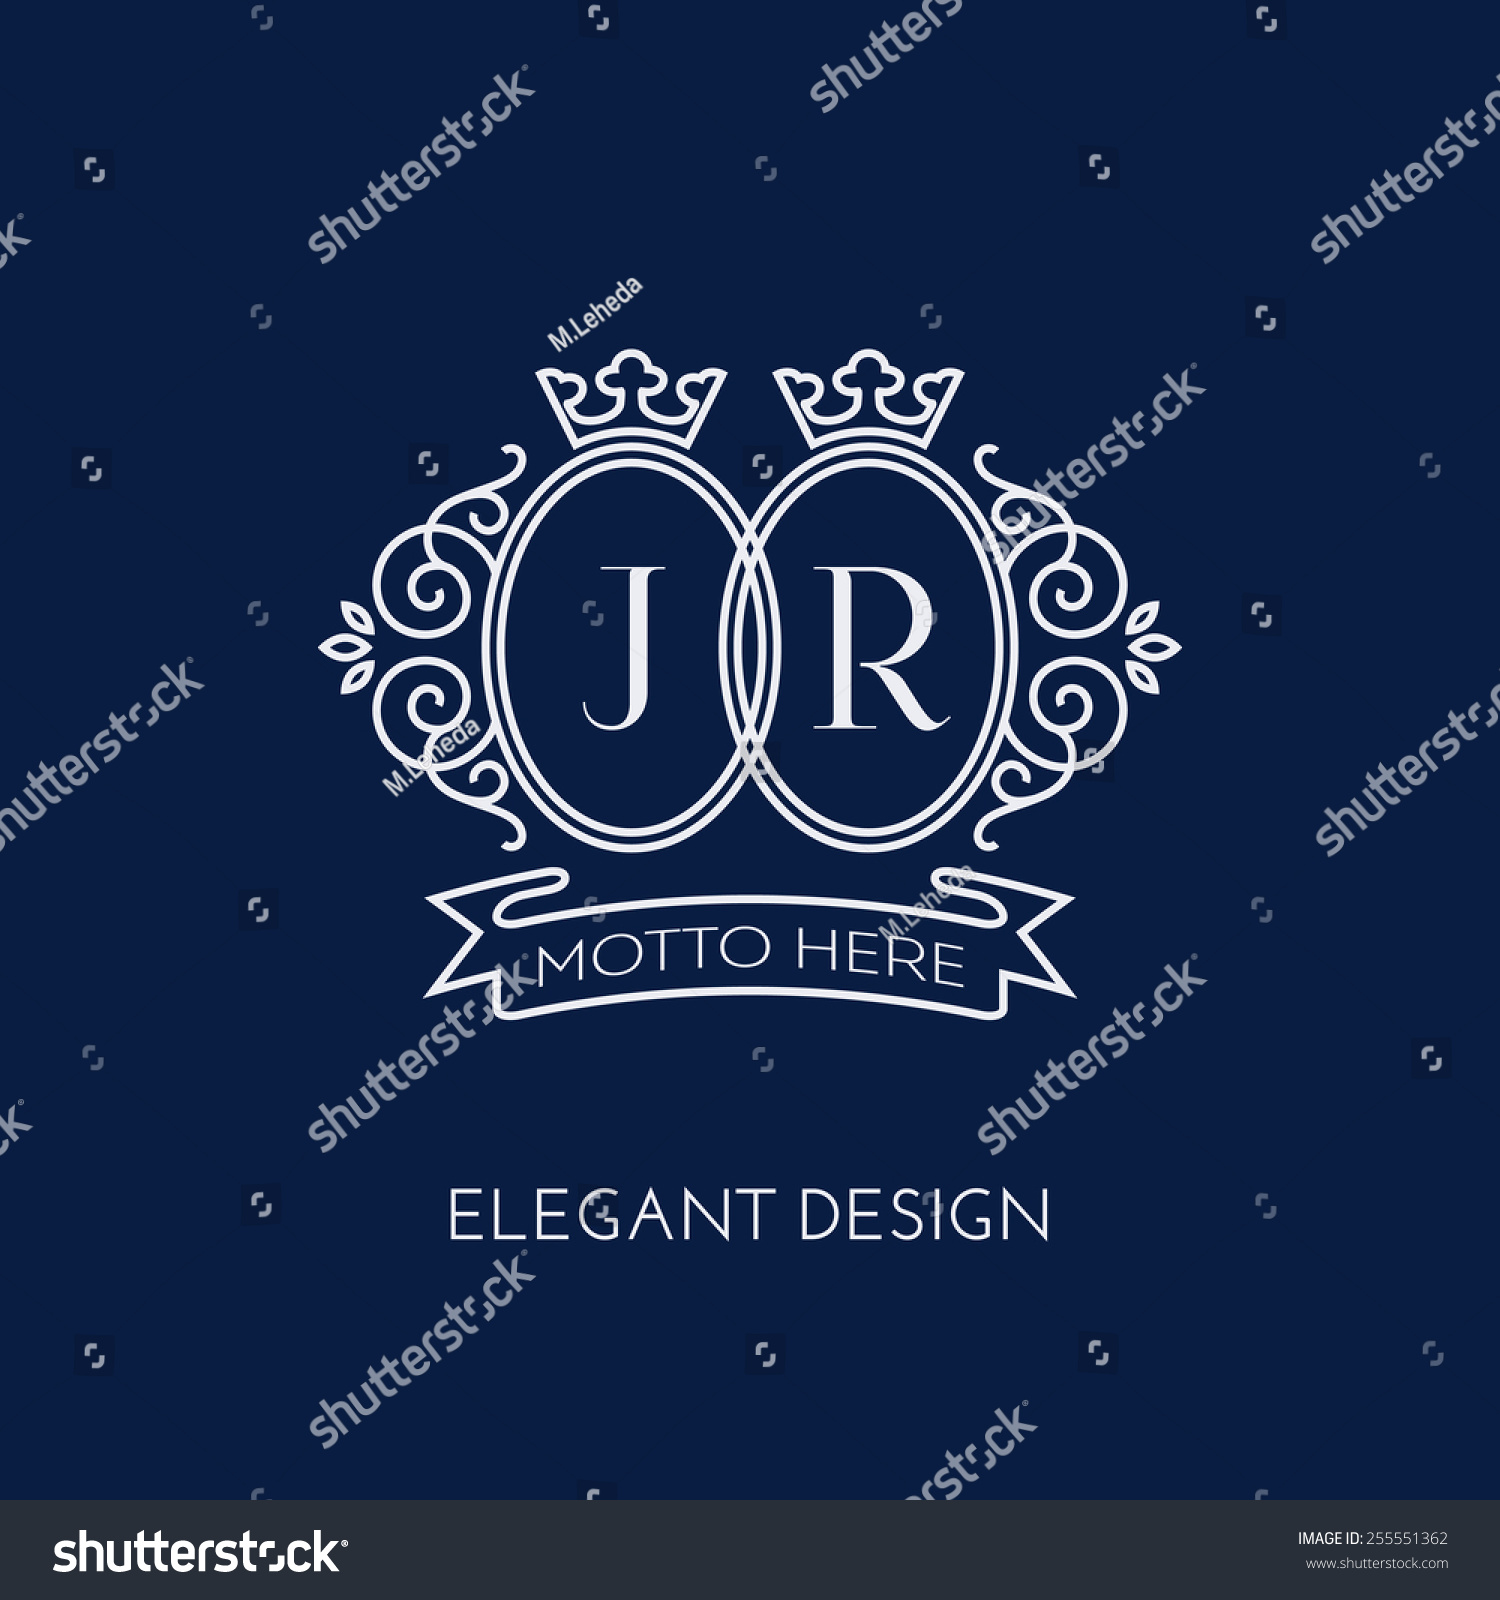 Simple and elegant monogram design template for two letters J R with a double crown Vector illustration